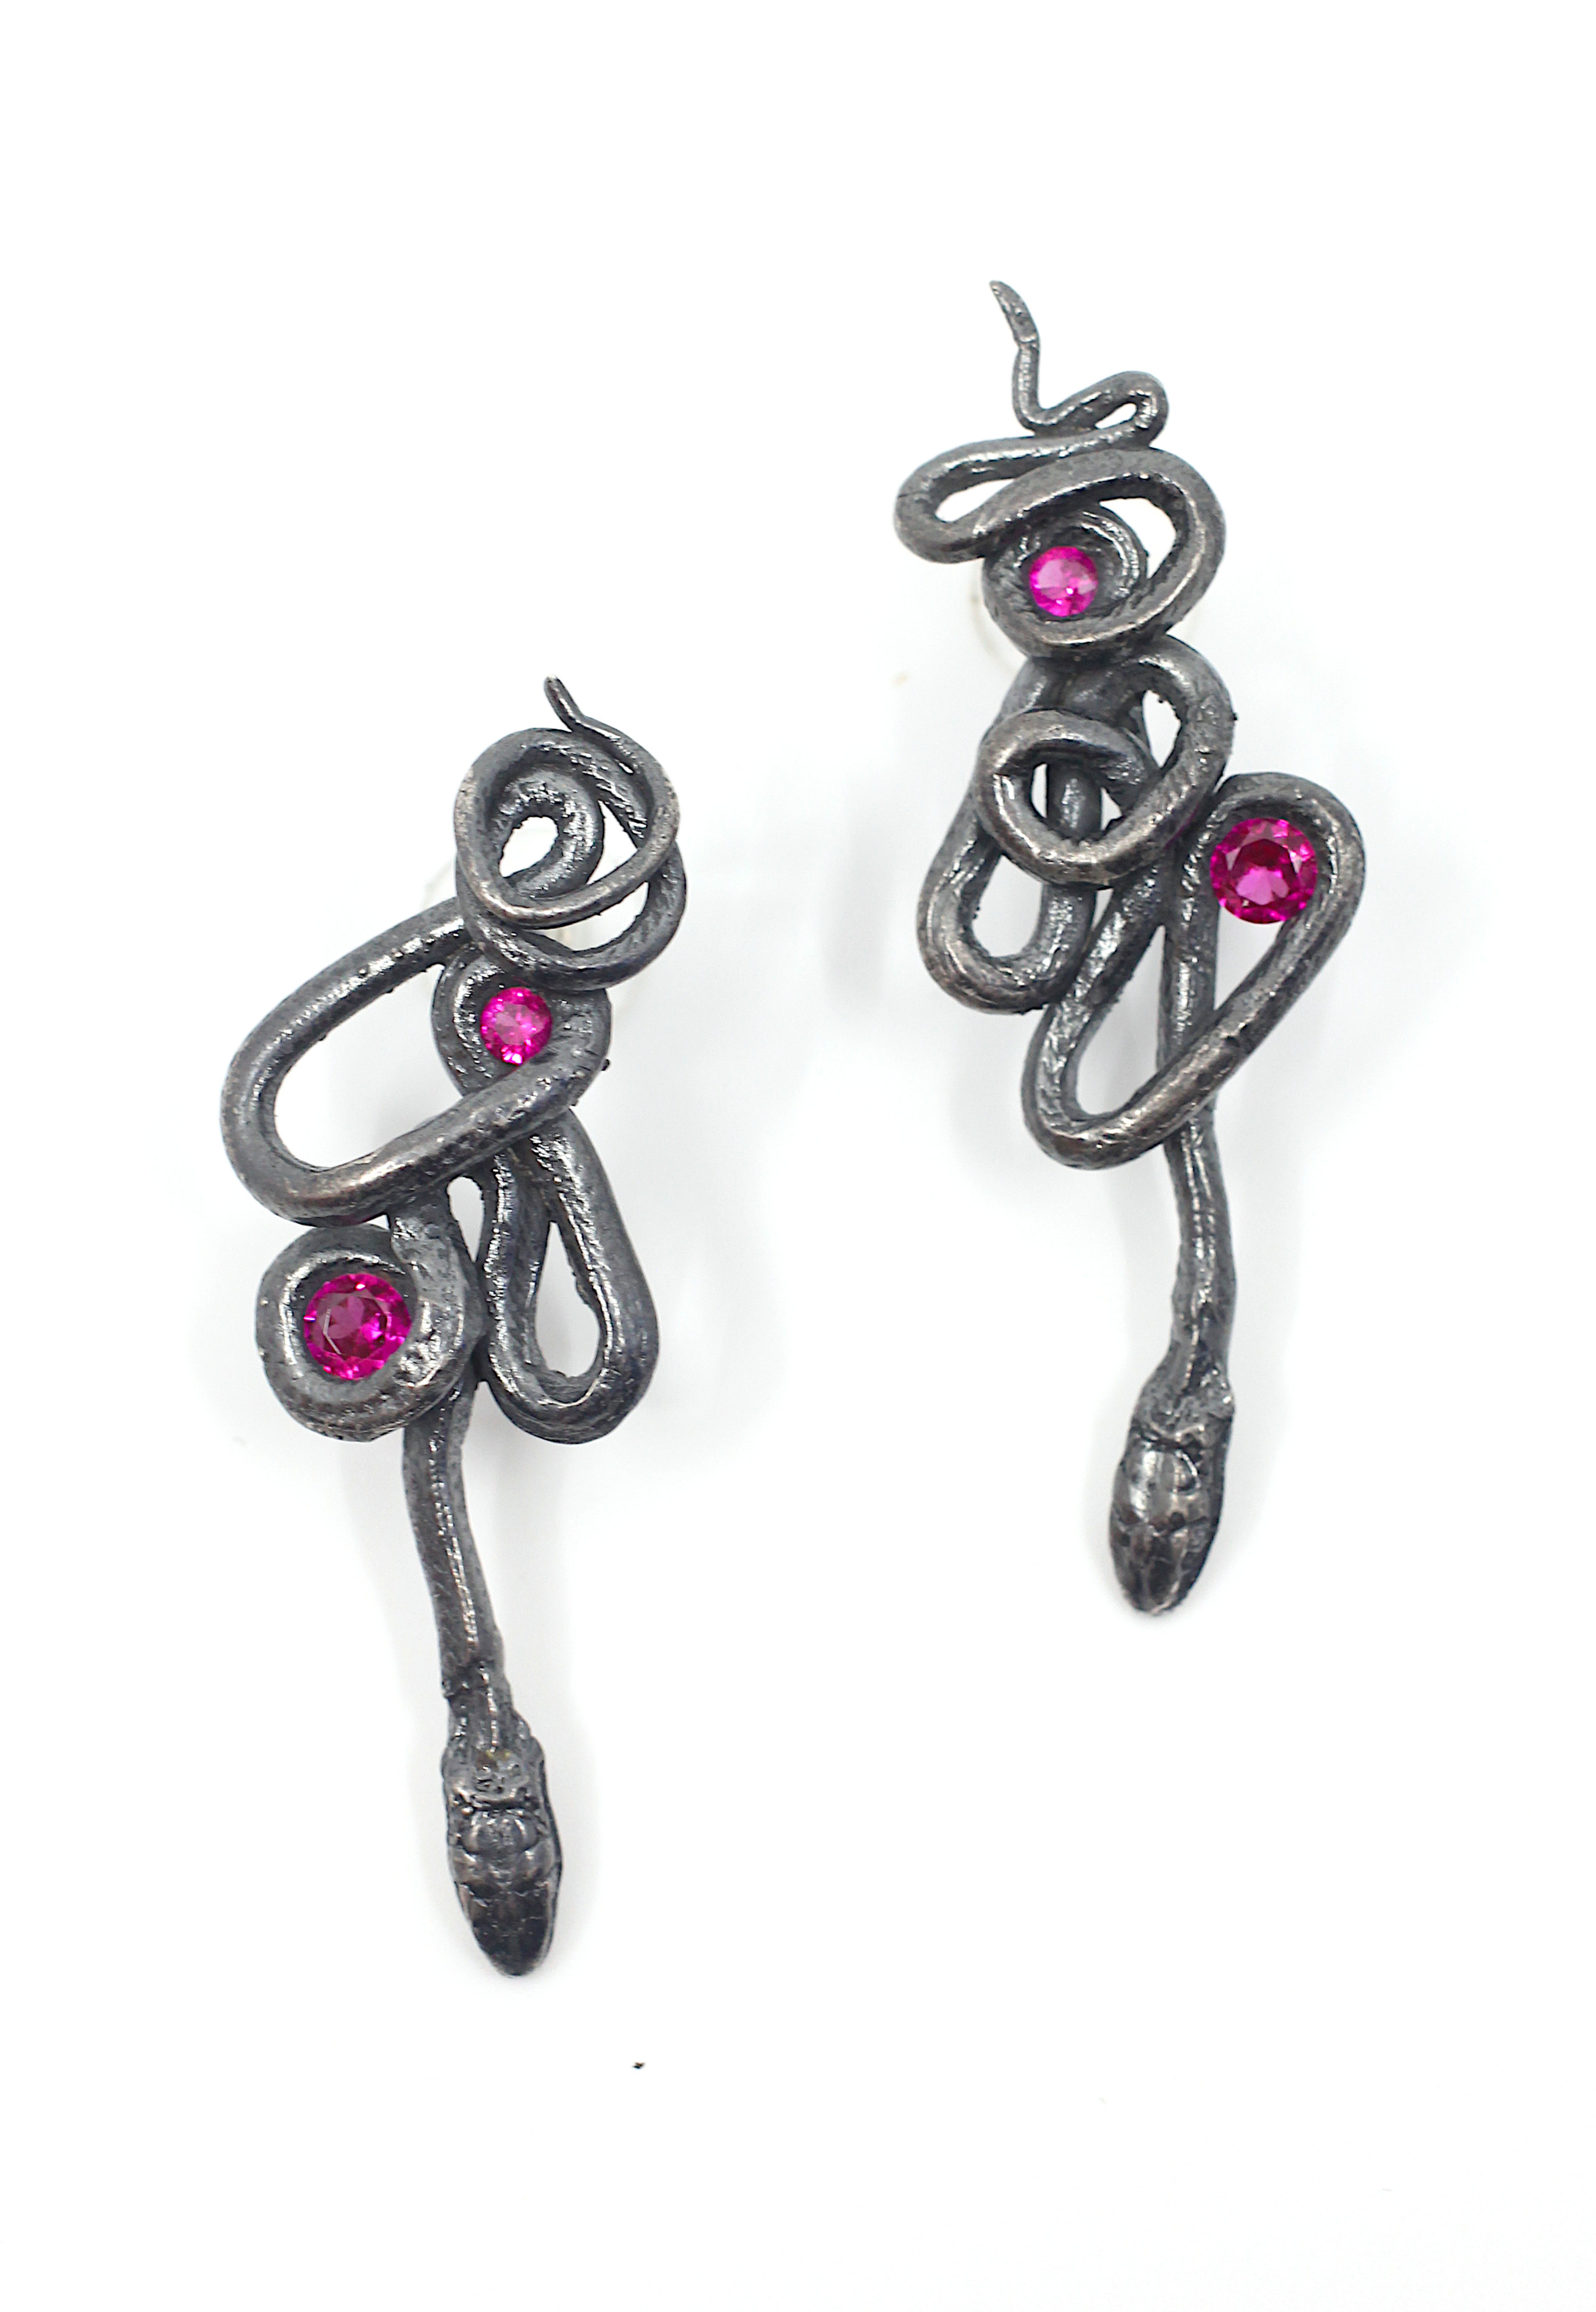 Ruby Serpentine Earrings (large) by Anna Johnson